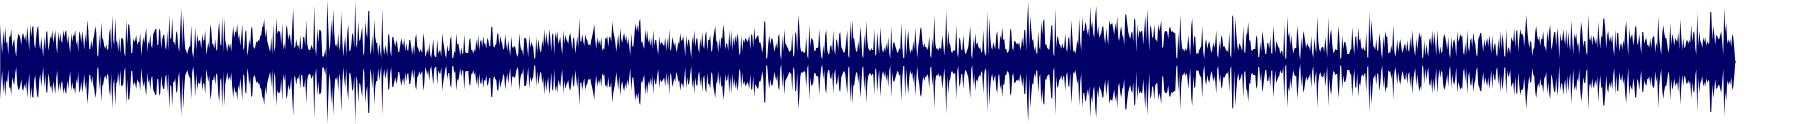 waveform of track #74836